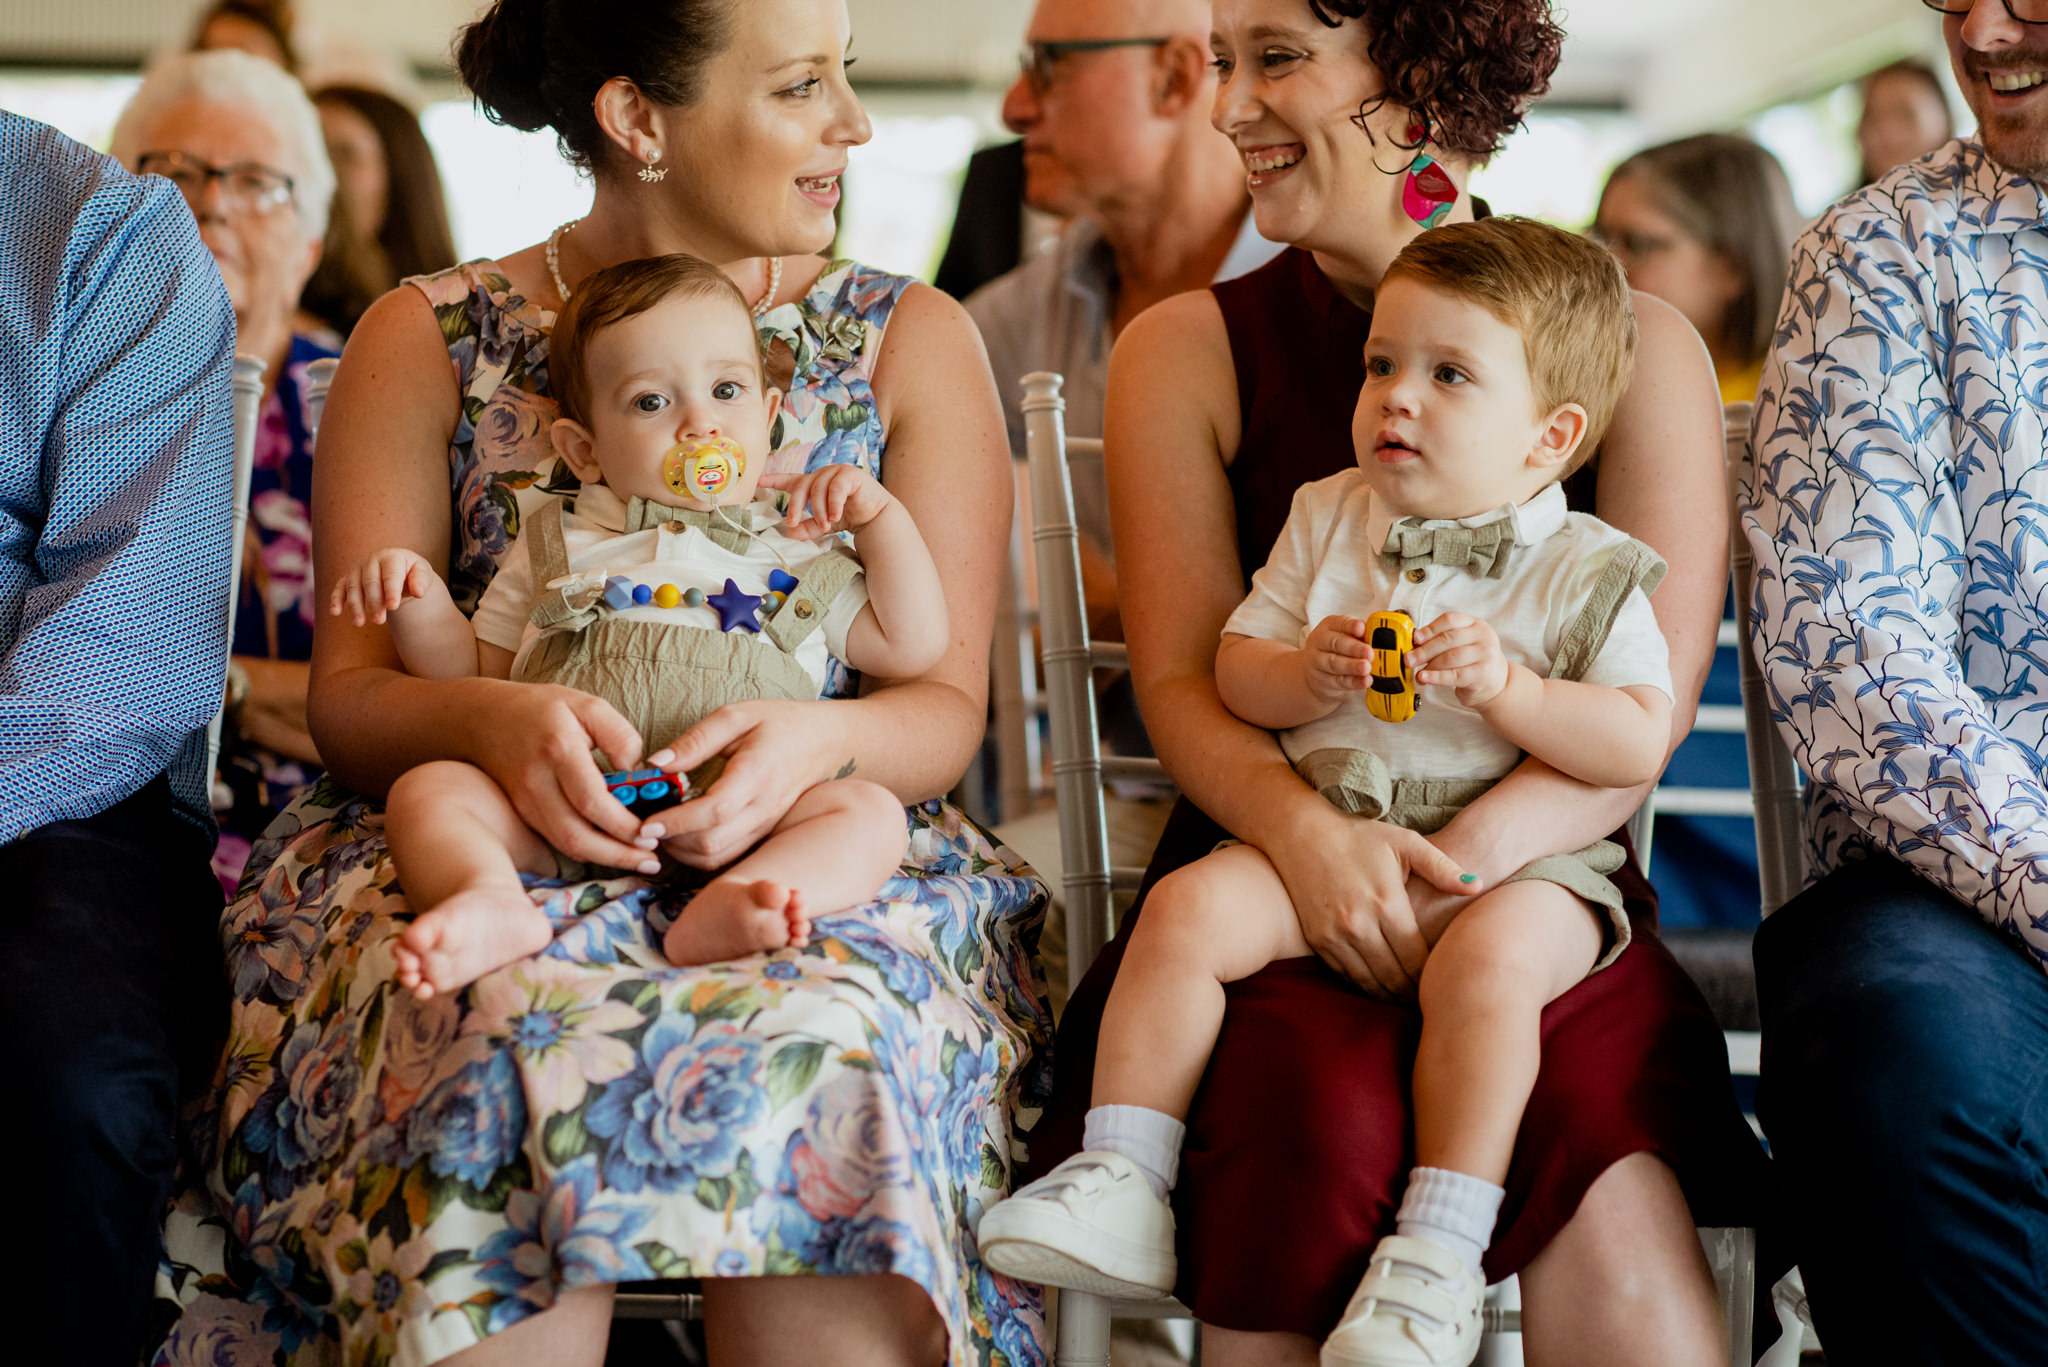 Two toddler boys sit on their mothers laps at a wedding